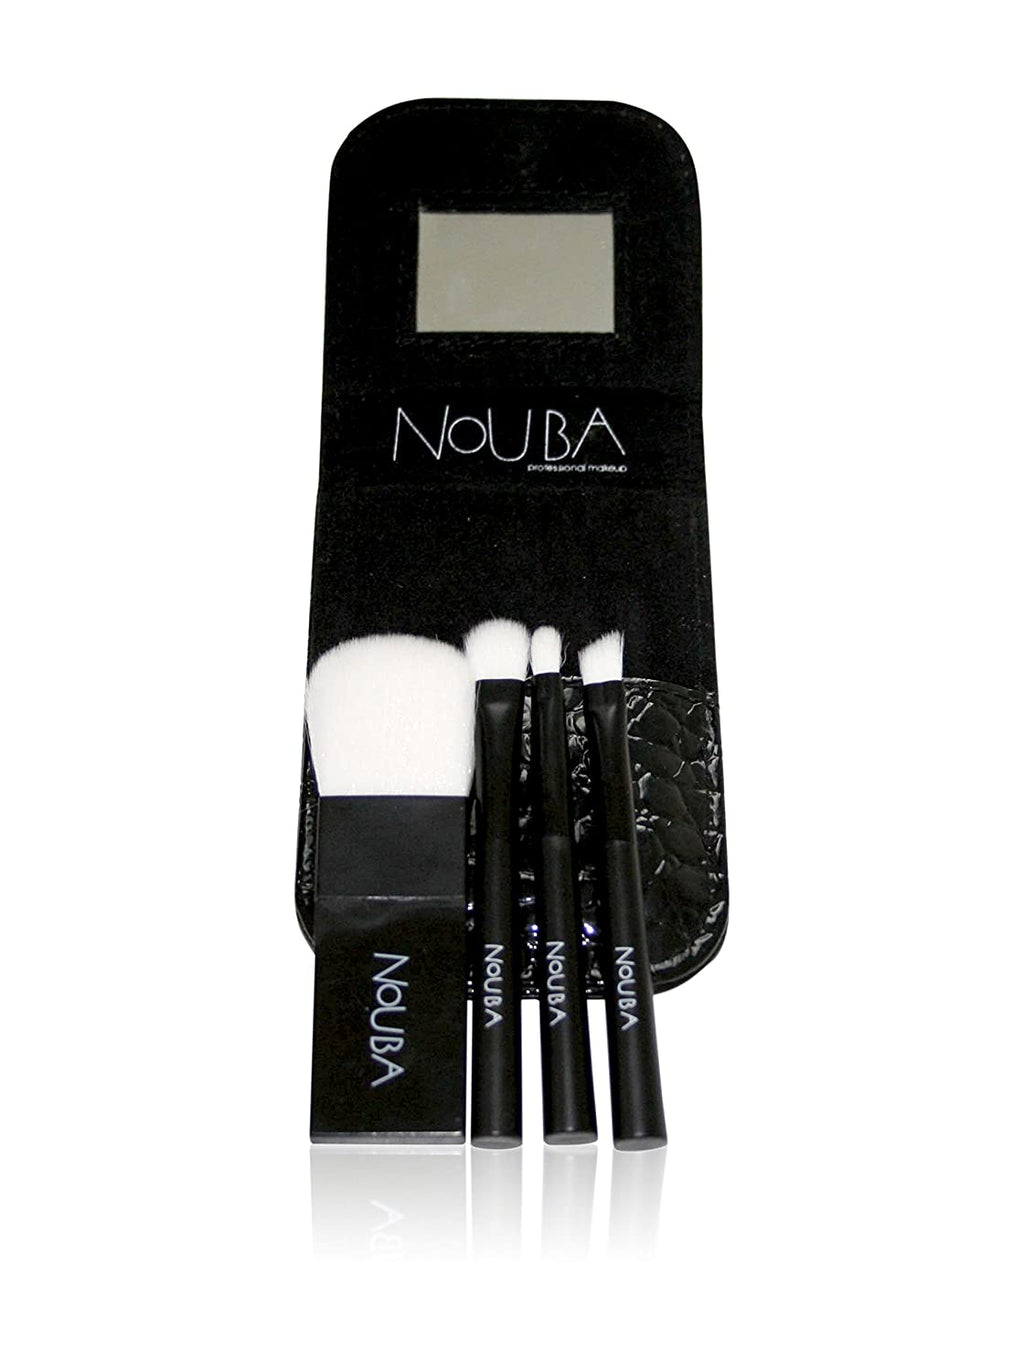 Nouba- Travel Bag Set With 4 BrushesCosmetics Online IE